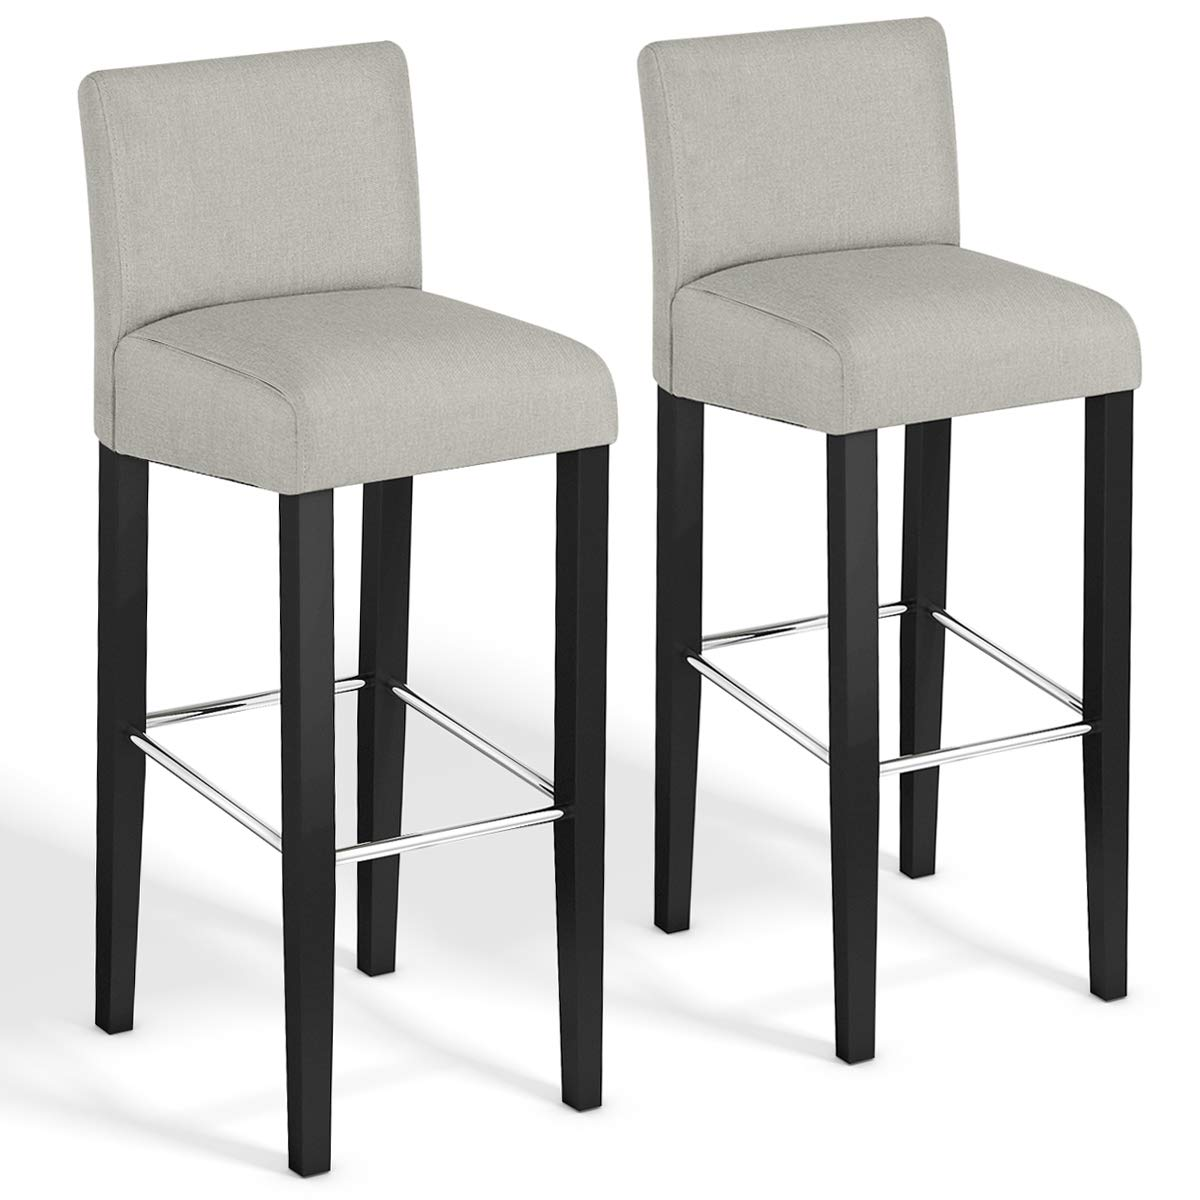 COSTWAY Bar Stool, Modern 40'' Contemporary Bar Stool with Height Fabric Padded Backrests and Seats Barstools with Solid Wood Legs Pub Bistro Kitchen Dining Side Chair (Beige, Set of 2) by COSTWAY